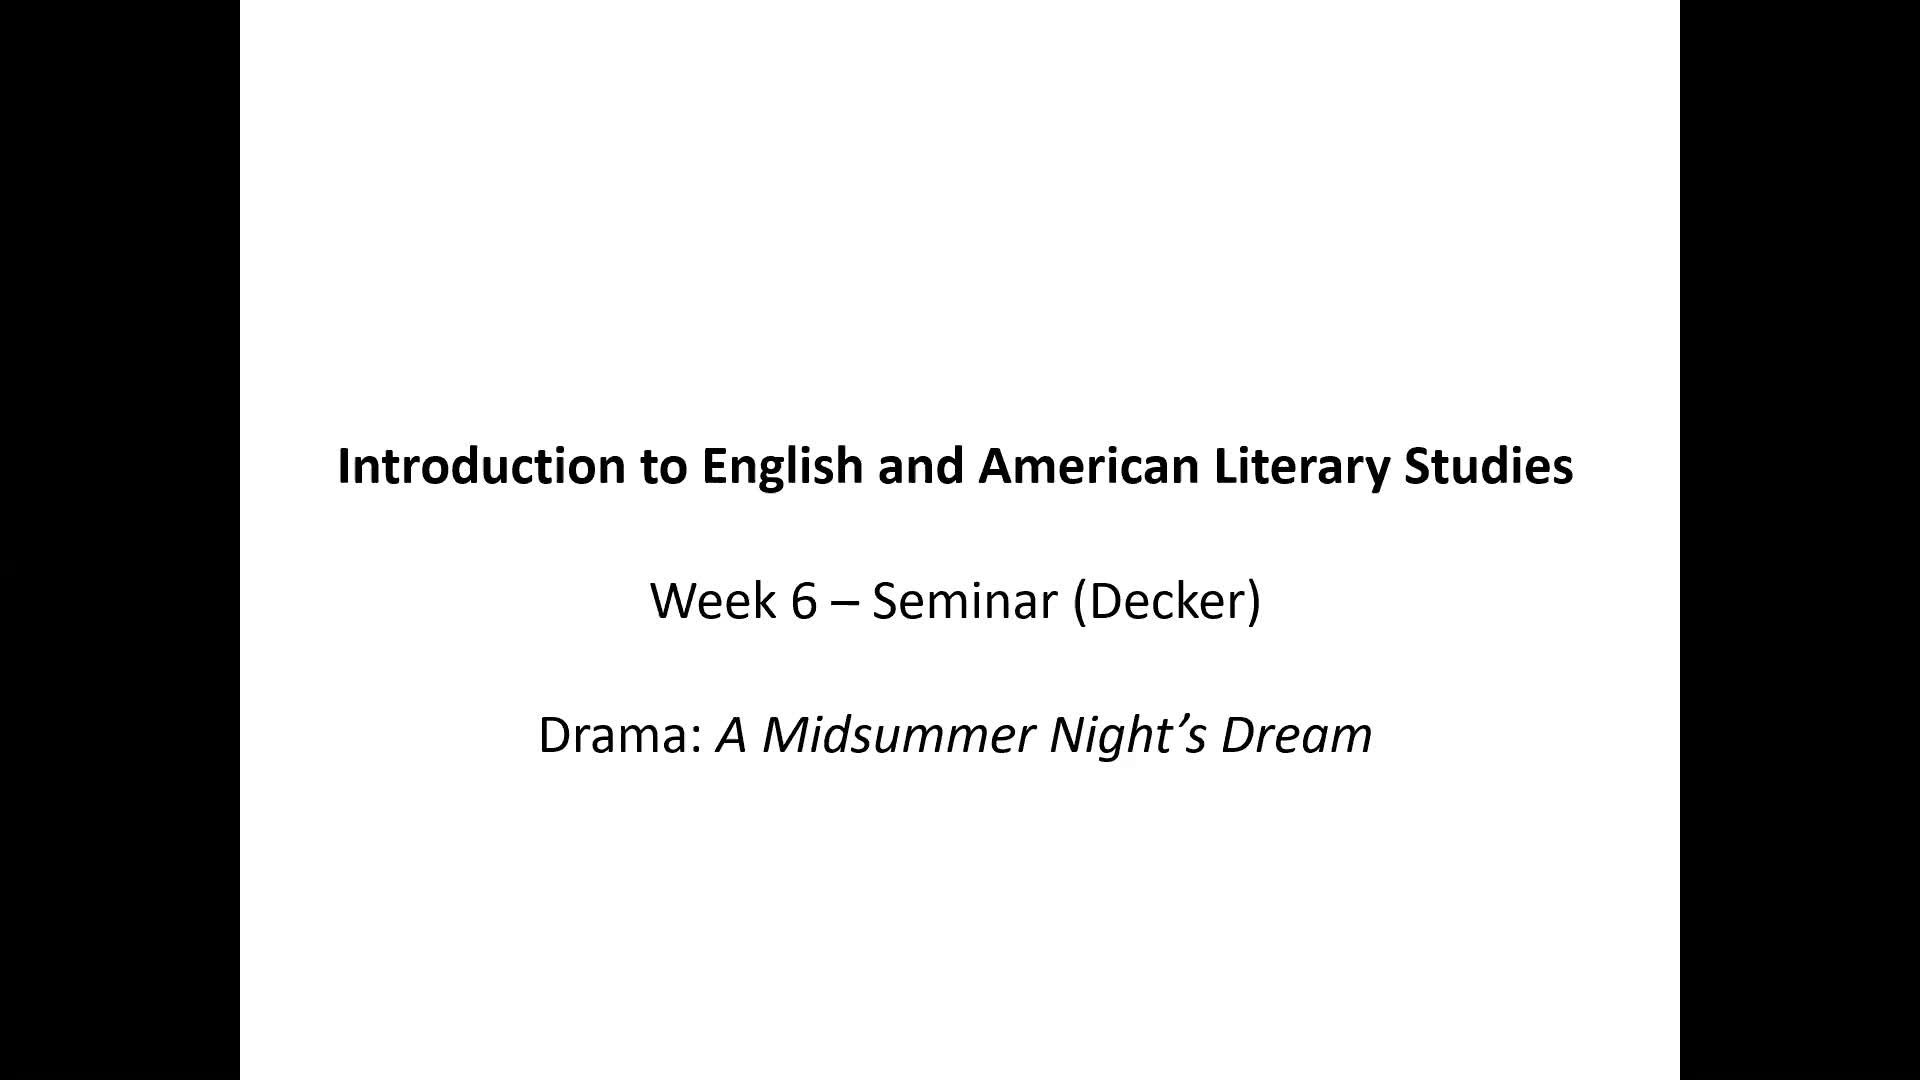 Introduction to English and American Literary Studies - Seminar Decker - Week 6